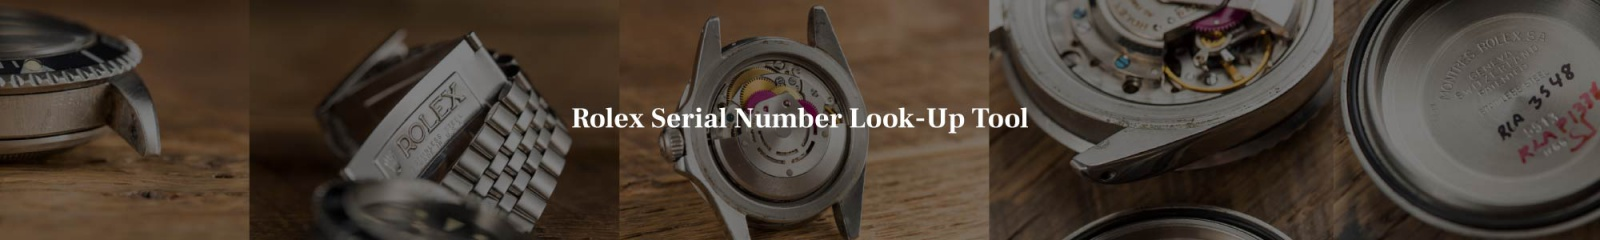 Look up your vintage Rolex serial number